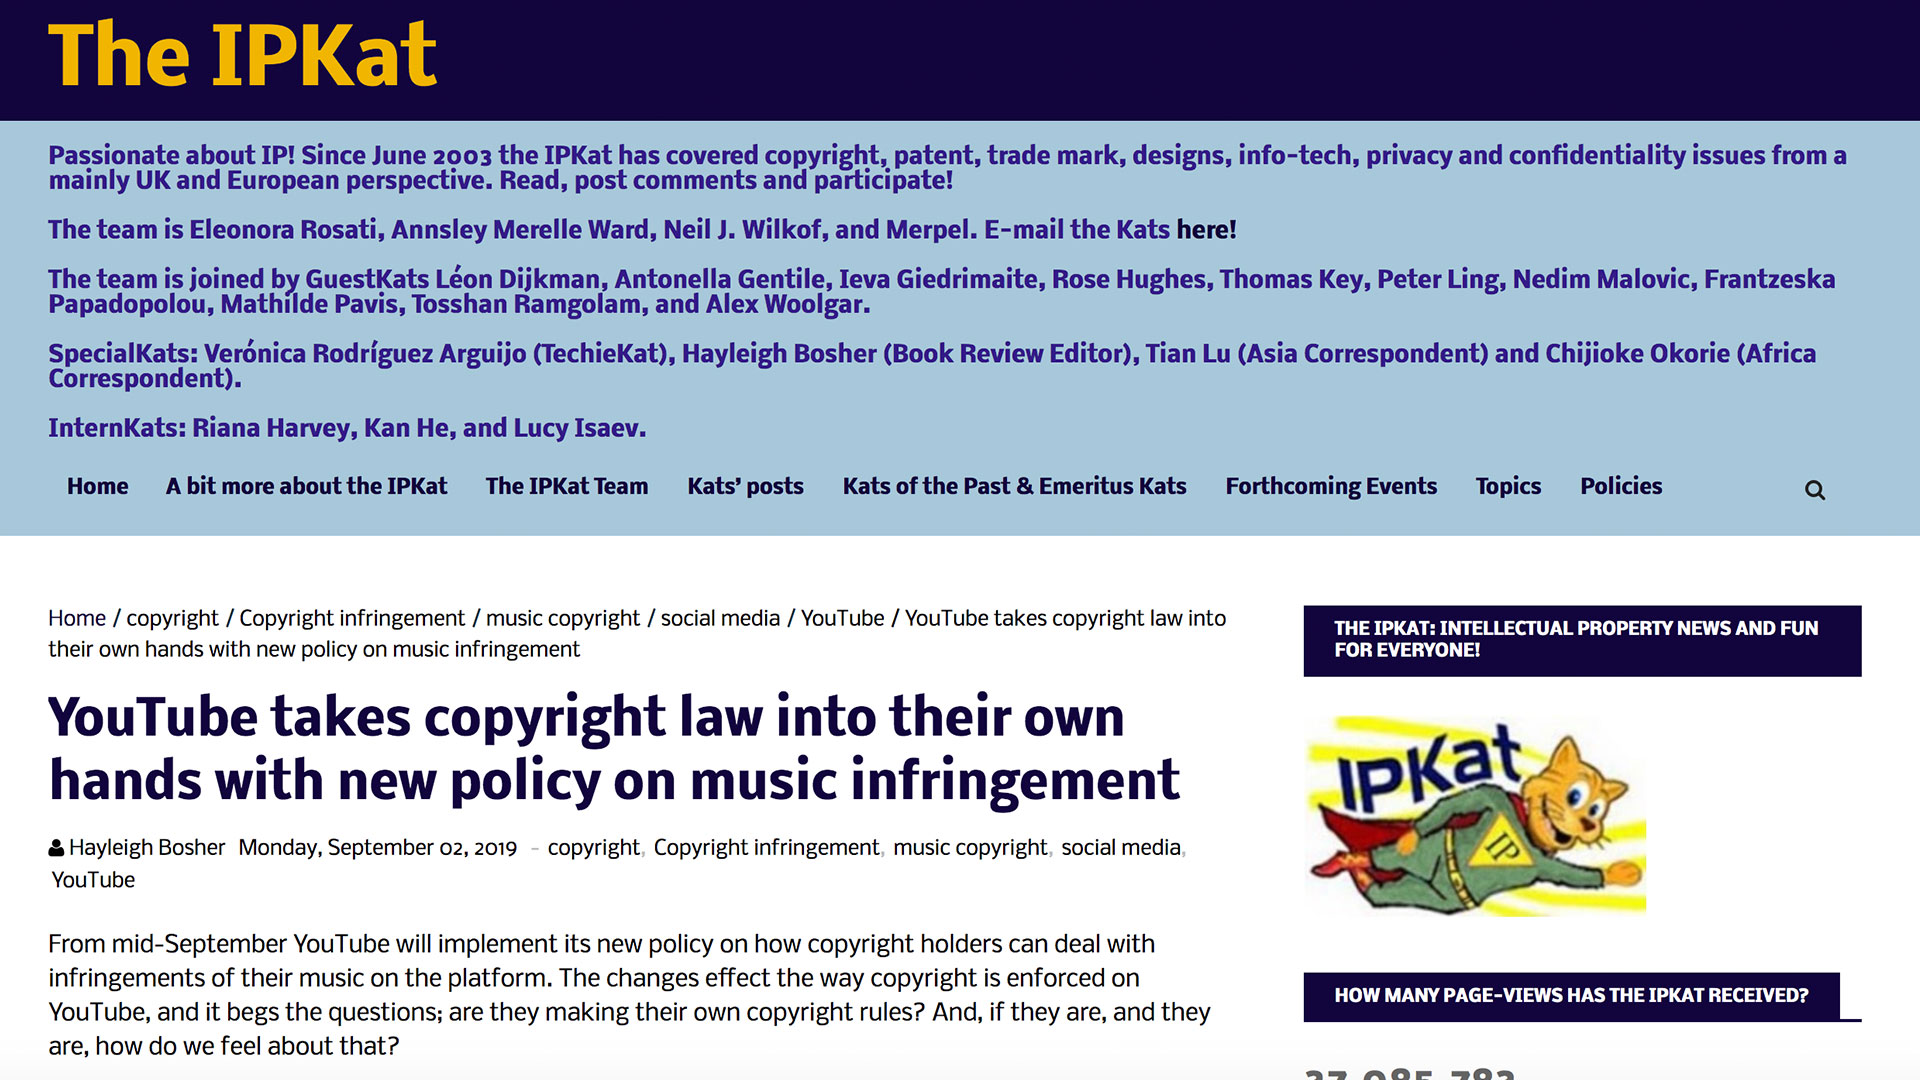 Fairness Rocks News YouTube takes copyright law into their own hands with new policy on music infringement